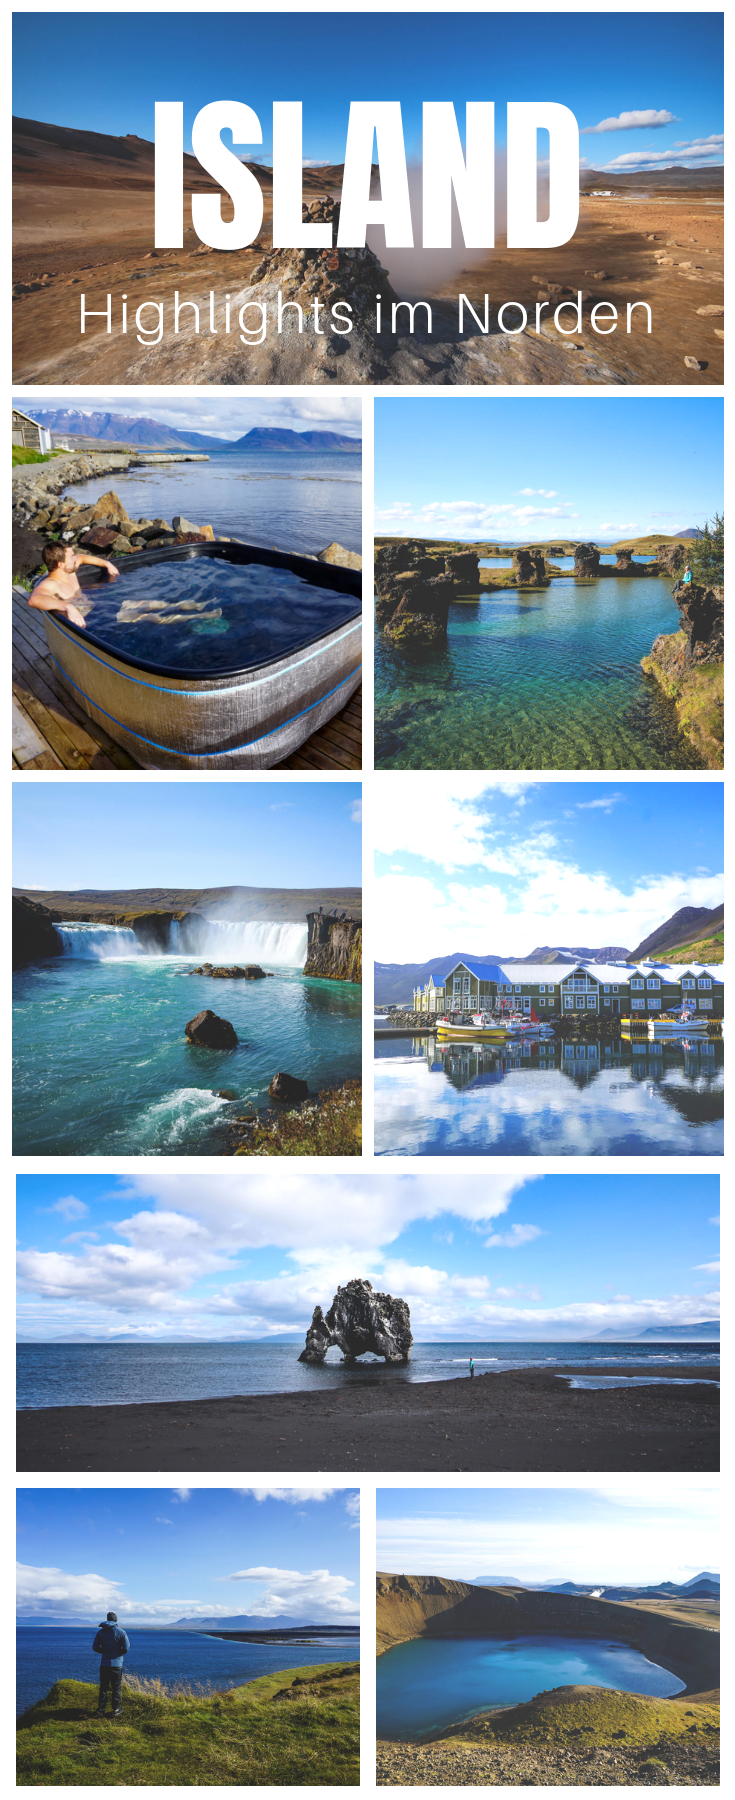 Photo of The sights in Northern Iceland at a glance